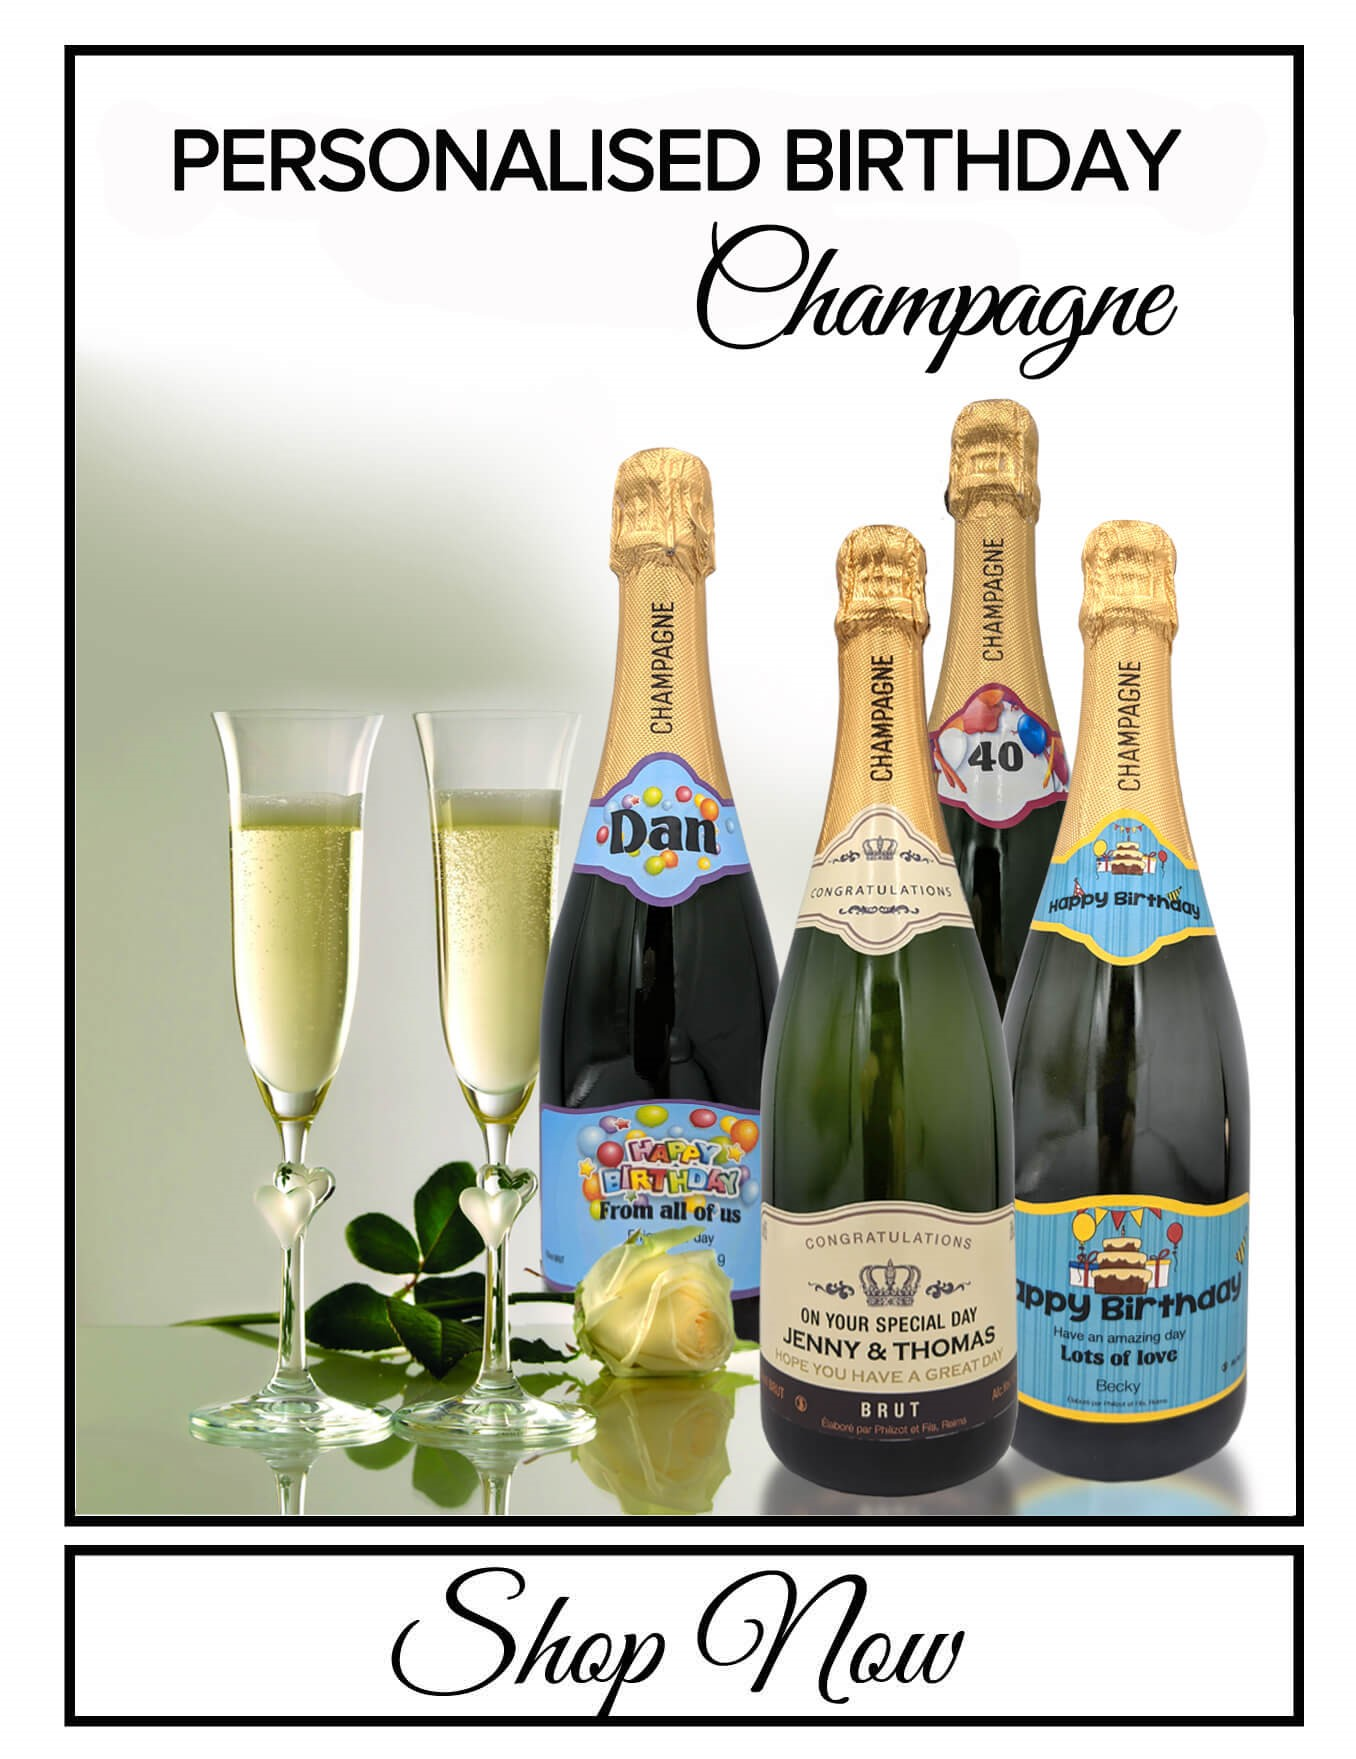 personalised Champagne bottle label delivery uk sparkling wine birthday gift present